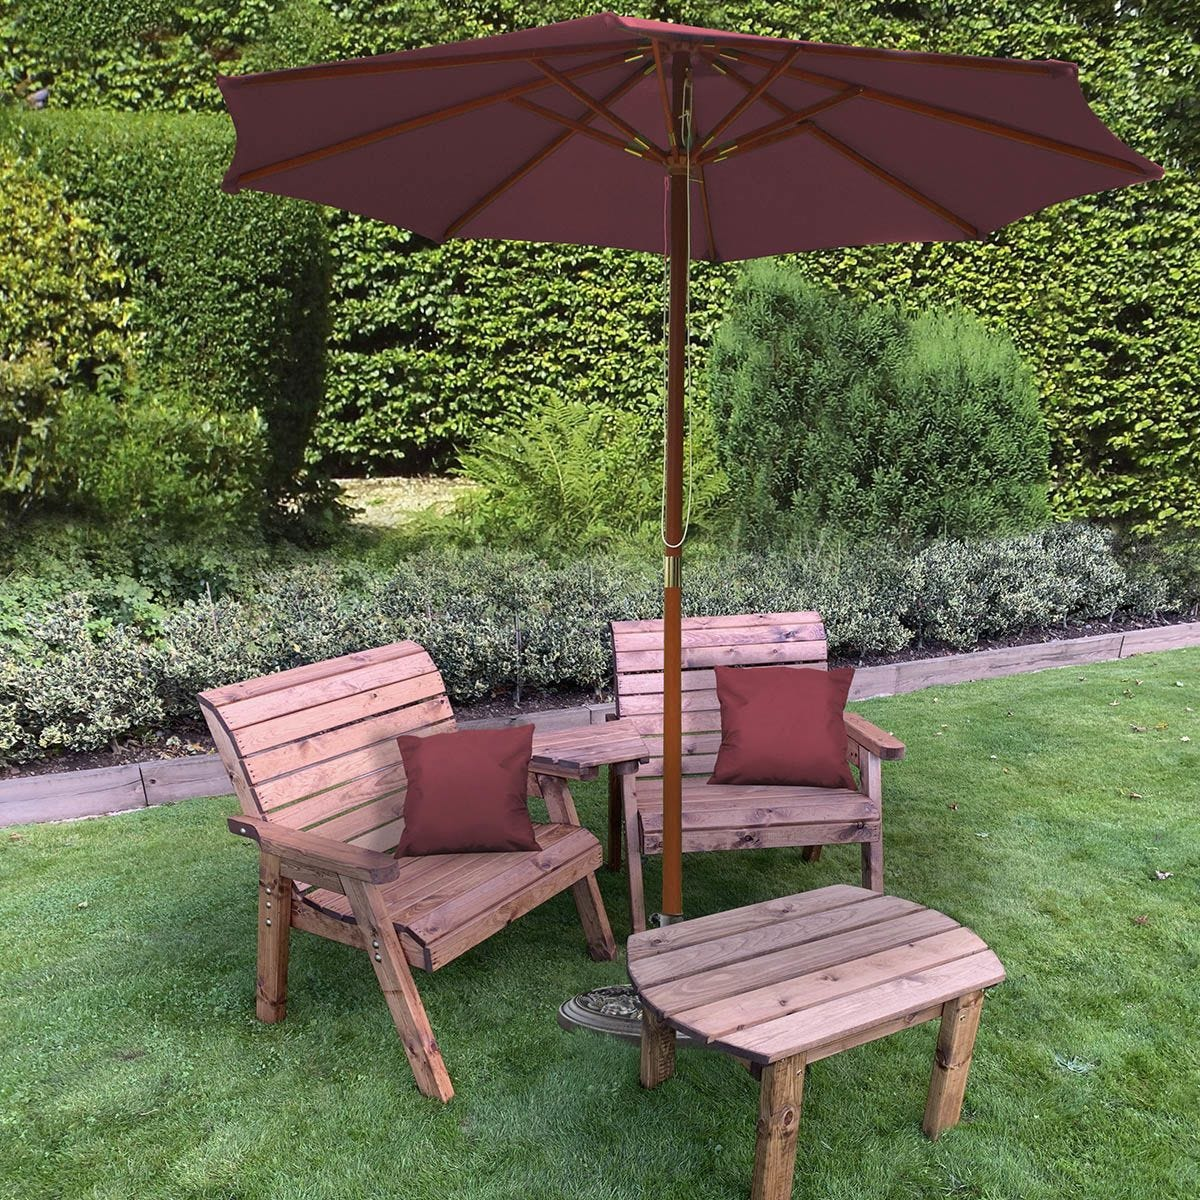 Charles Taylor Grand Twin Angled with Coffee Table and Burgundy Parasol and Cushions